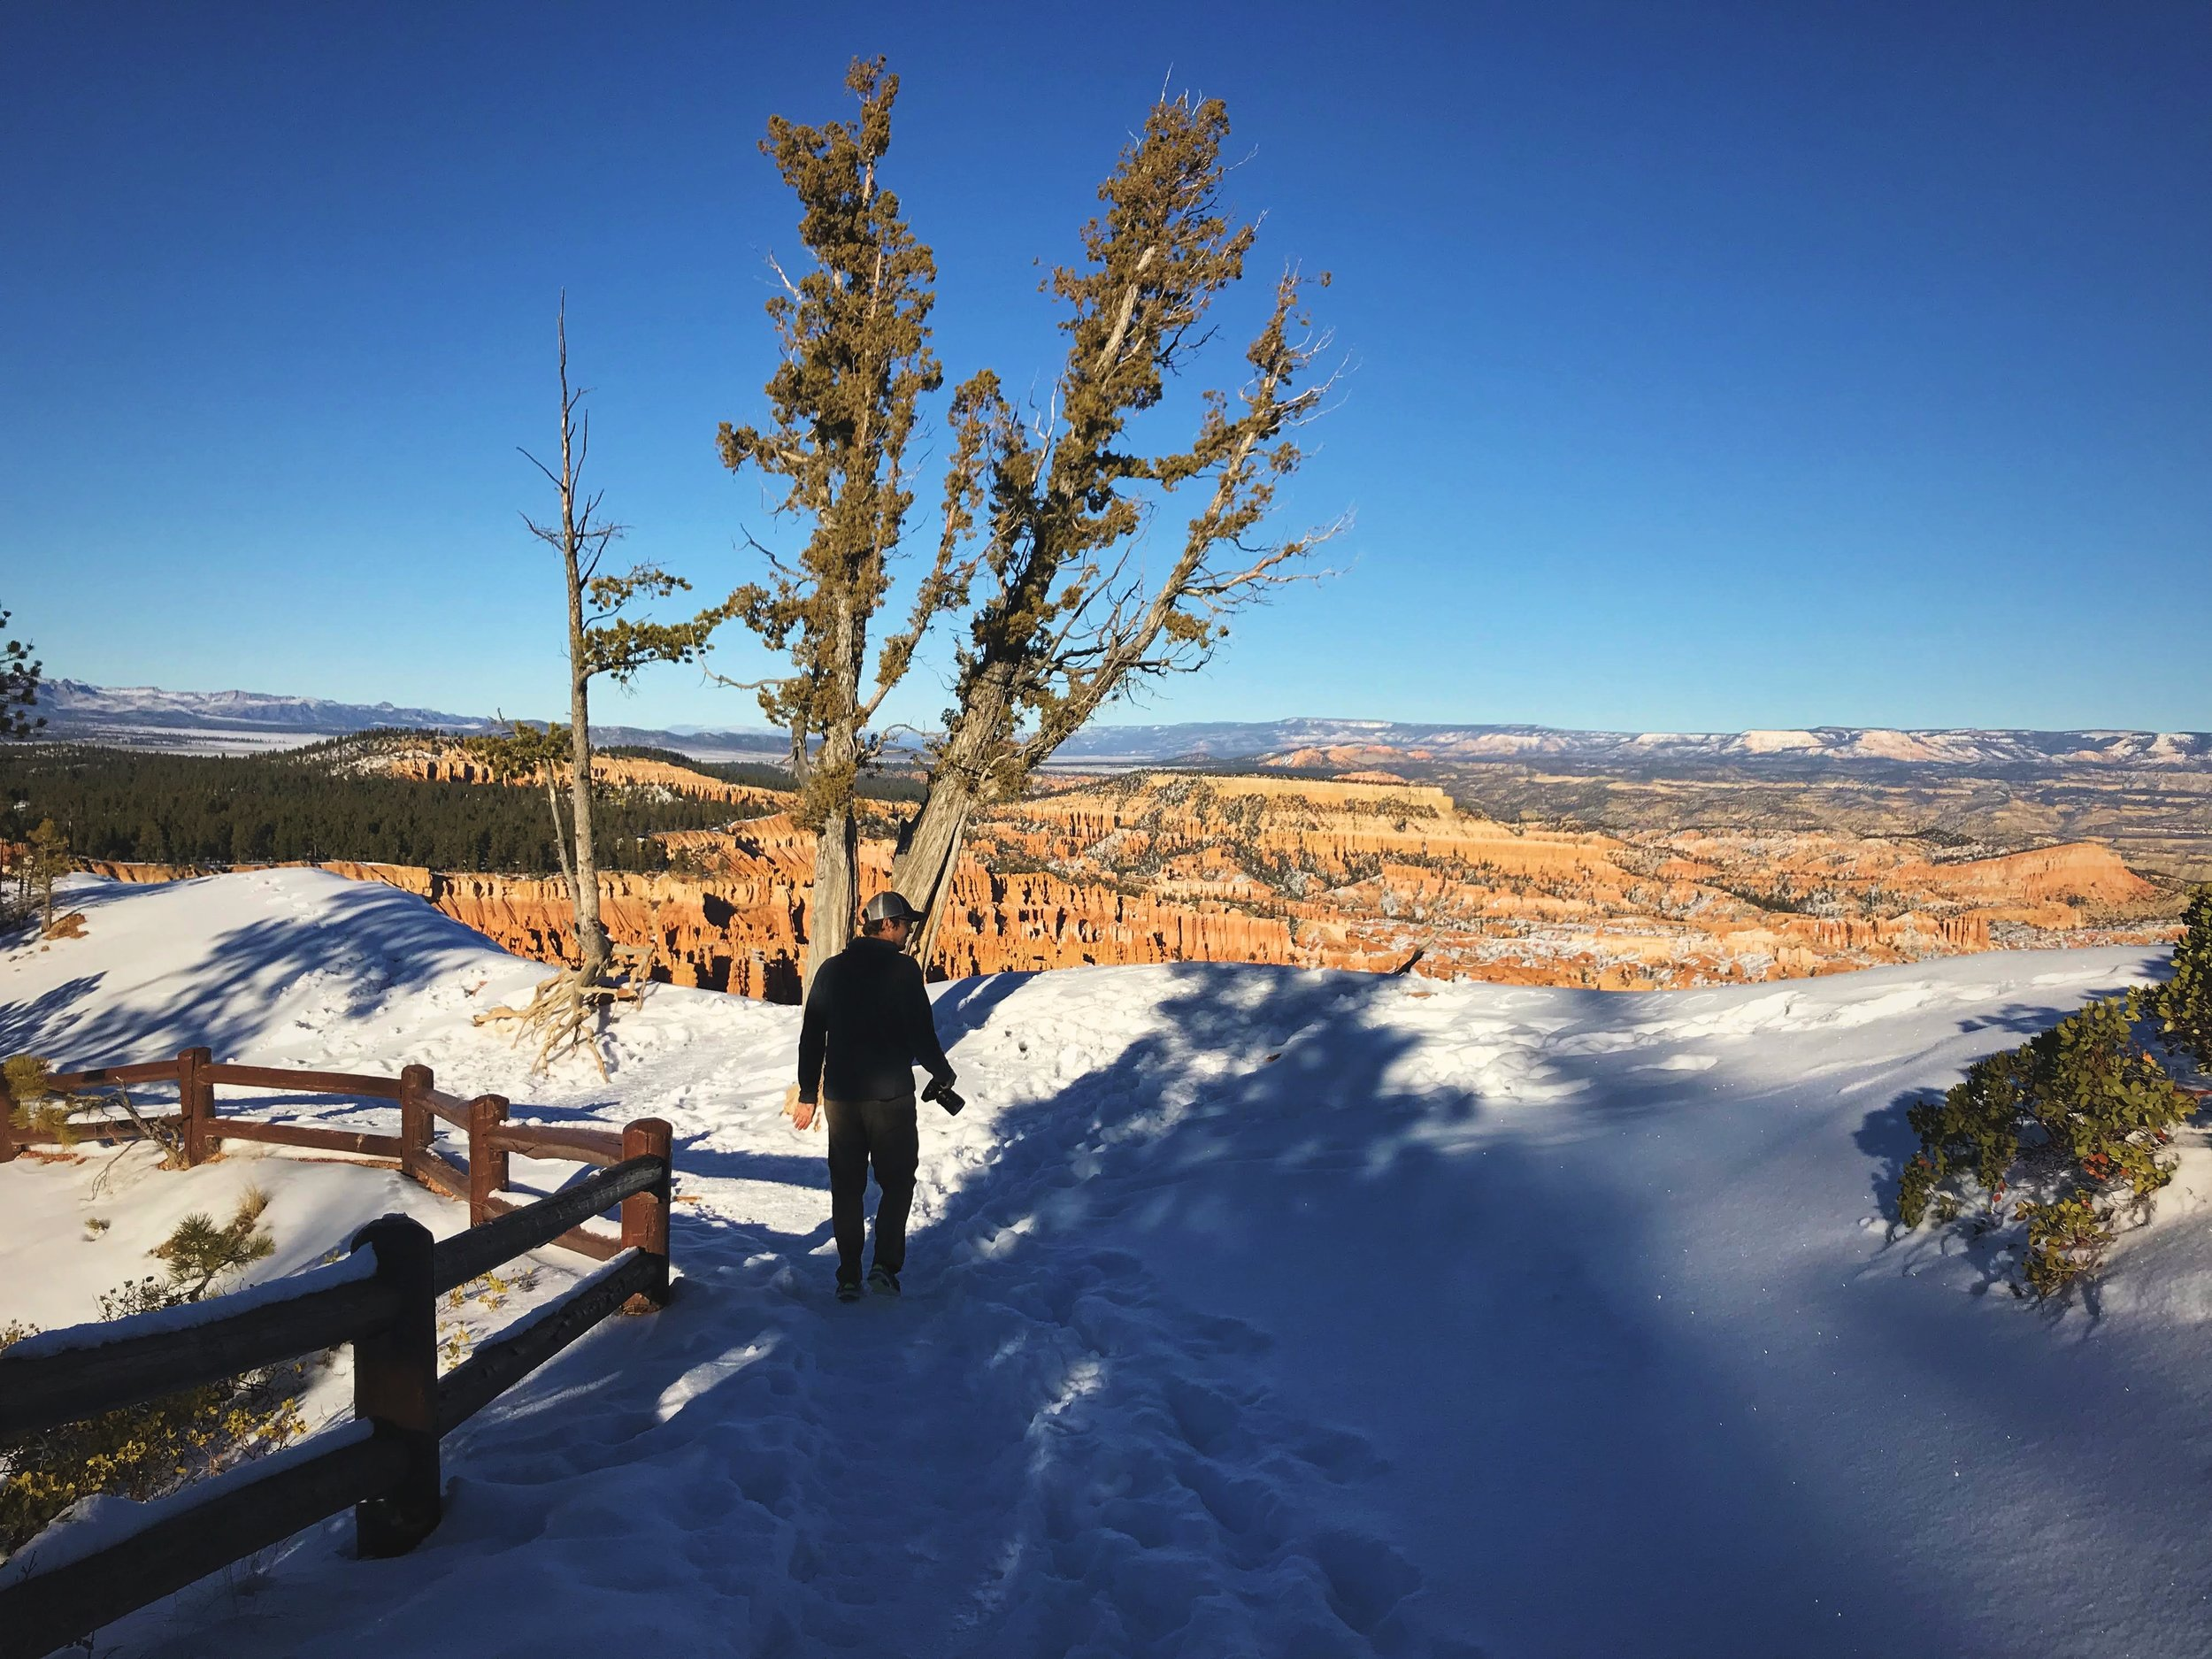 Bryce Canyon was covered in a beautiful sparkly layer of snow when we were visiting in mid-December.